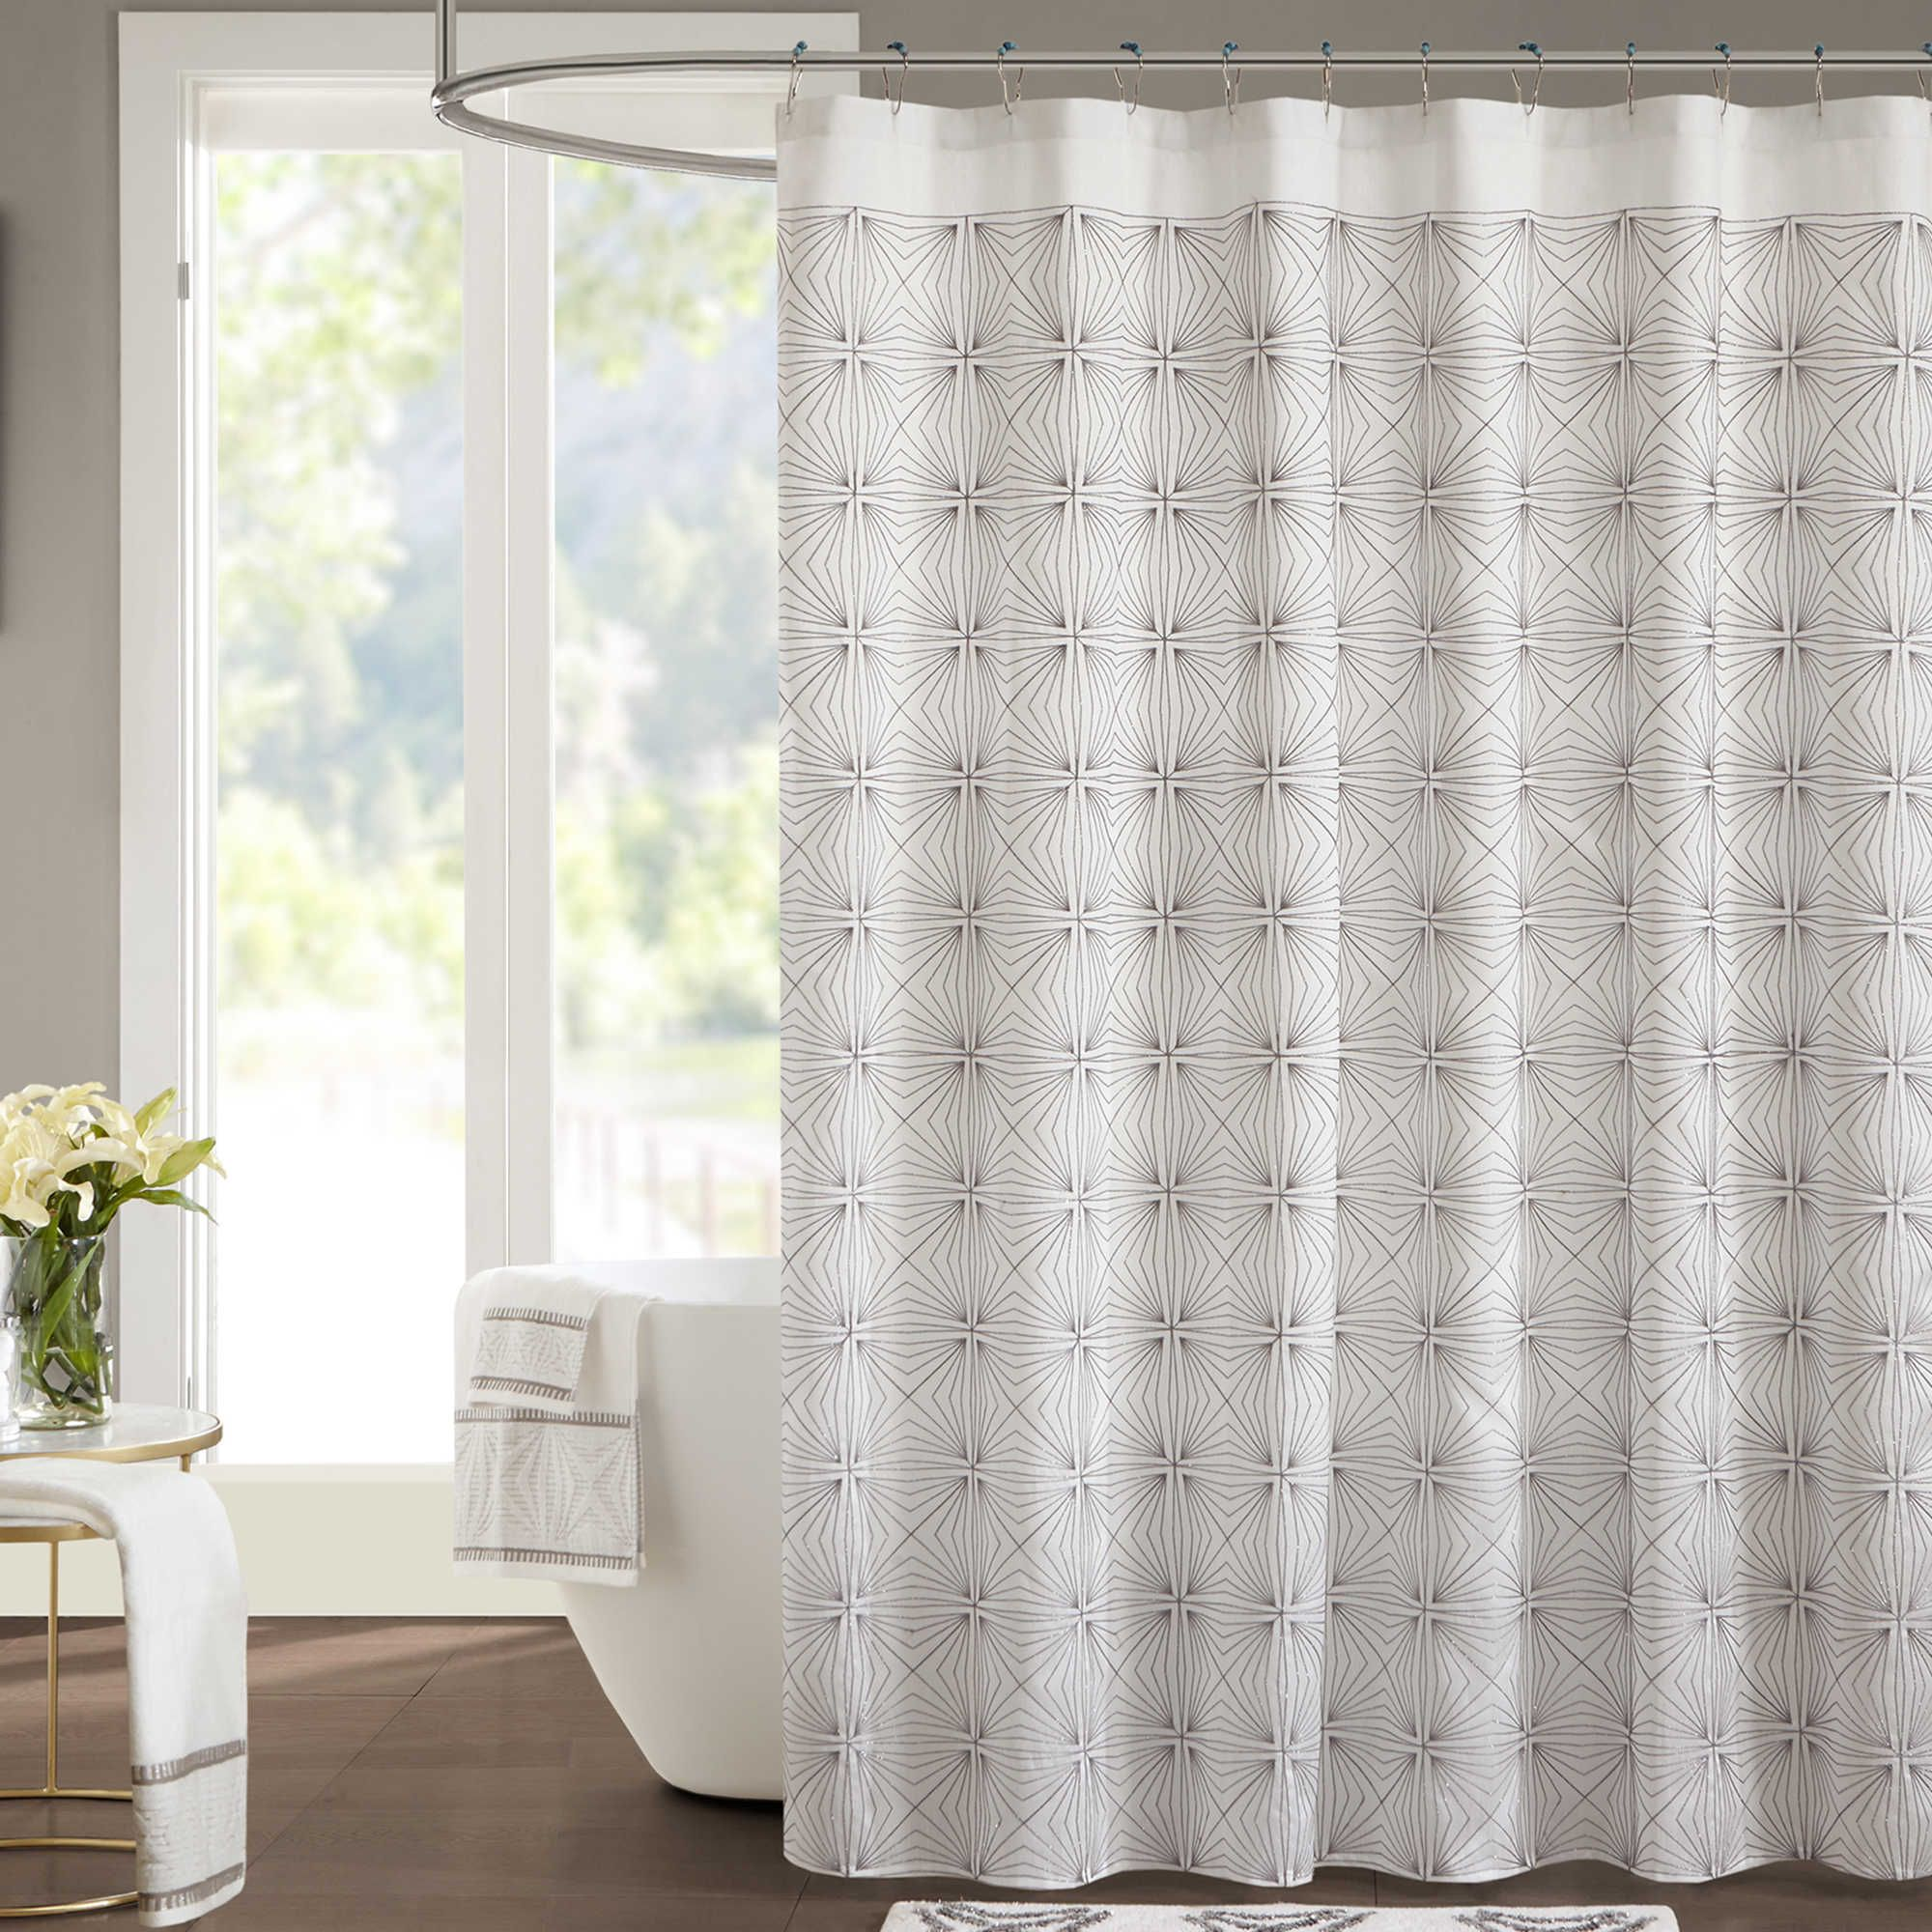 Jla Coty 72 Inch X 96 Inch Shower Curtain Gray Shower Curtains